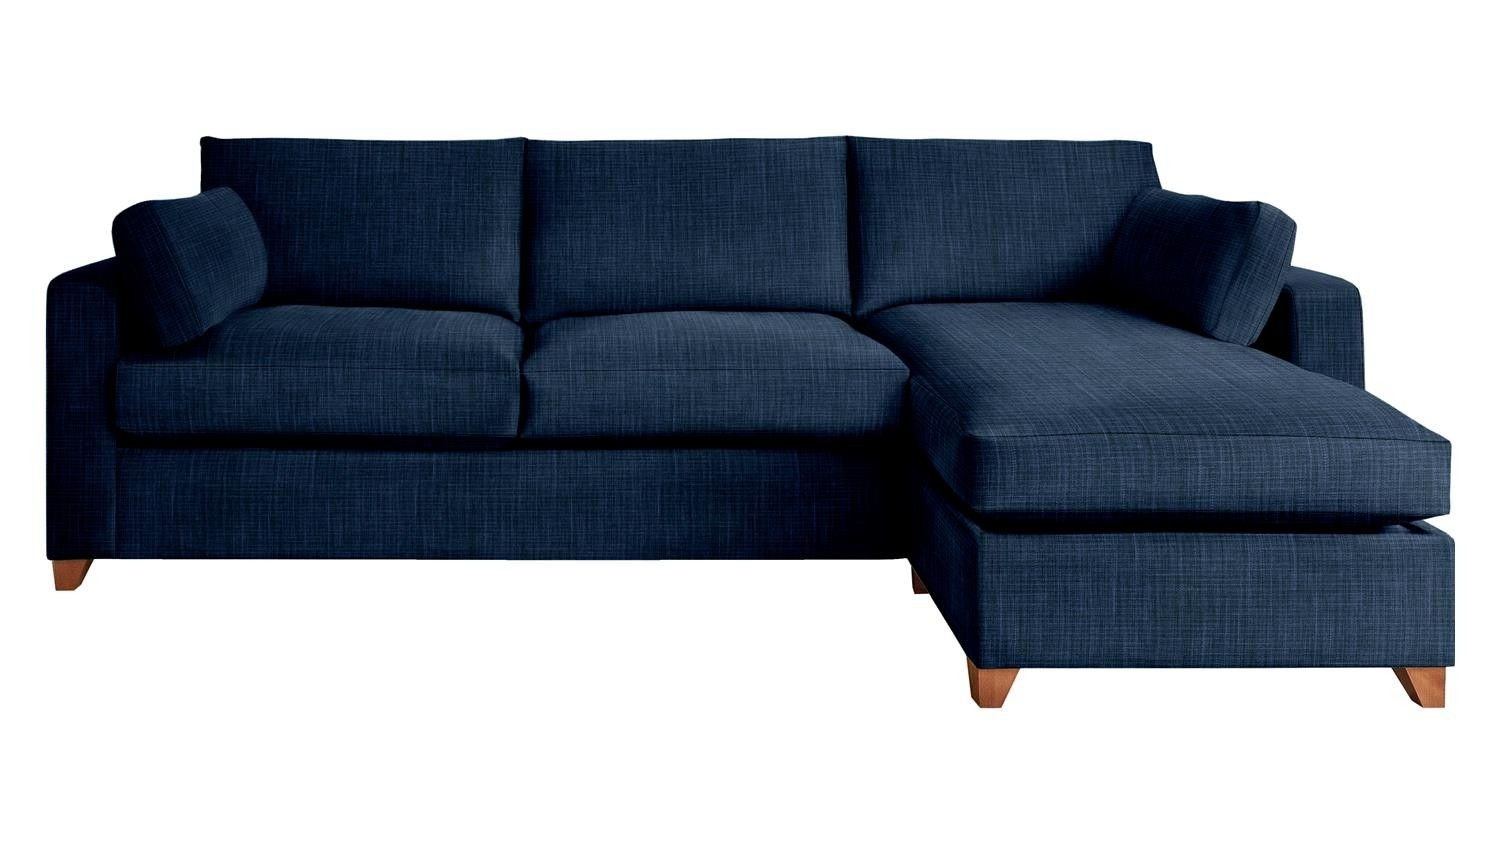 The Ashwell 5 Seater Right Chaise Storage Sofa Bed